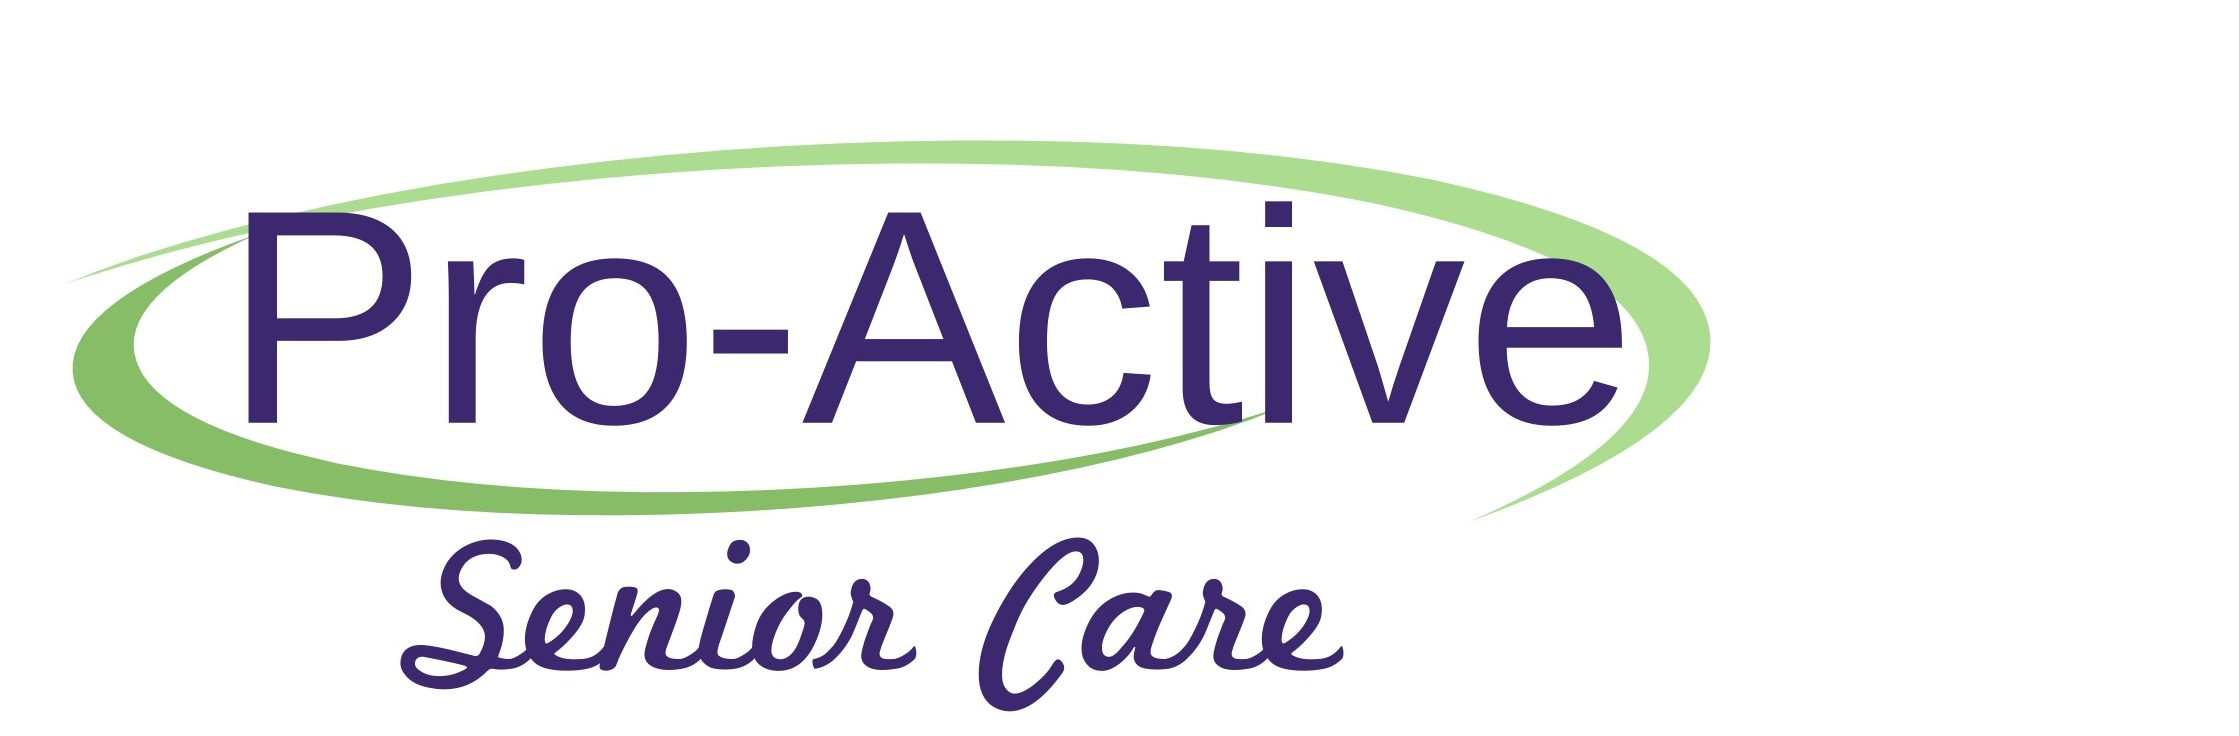 PRO-ACTIVE SENIOR CARE